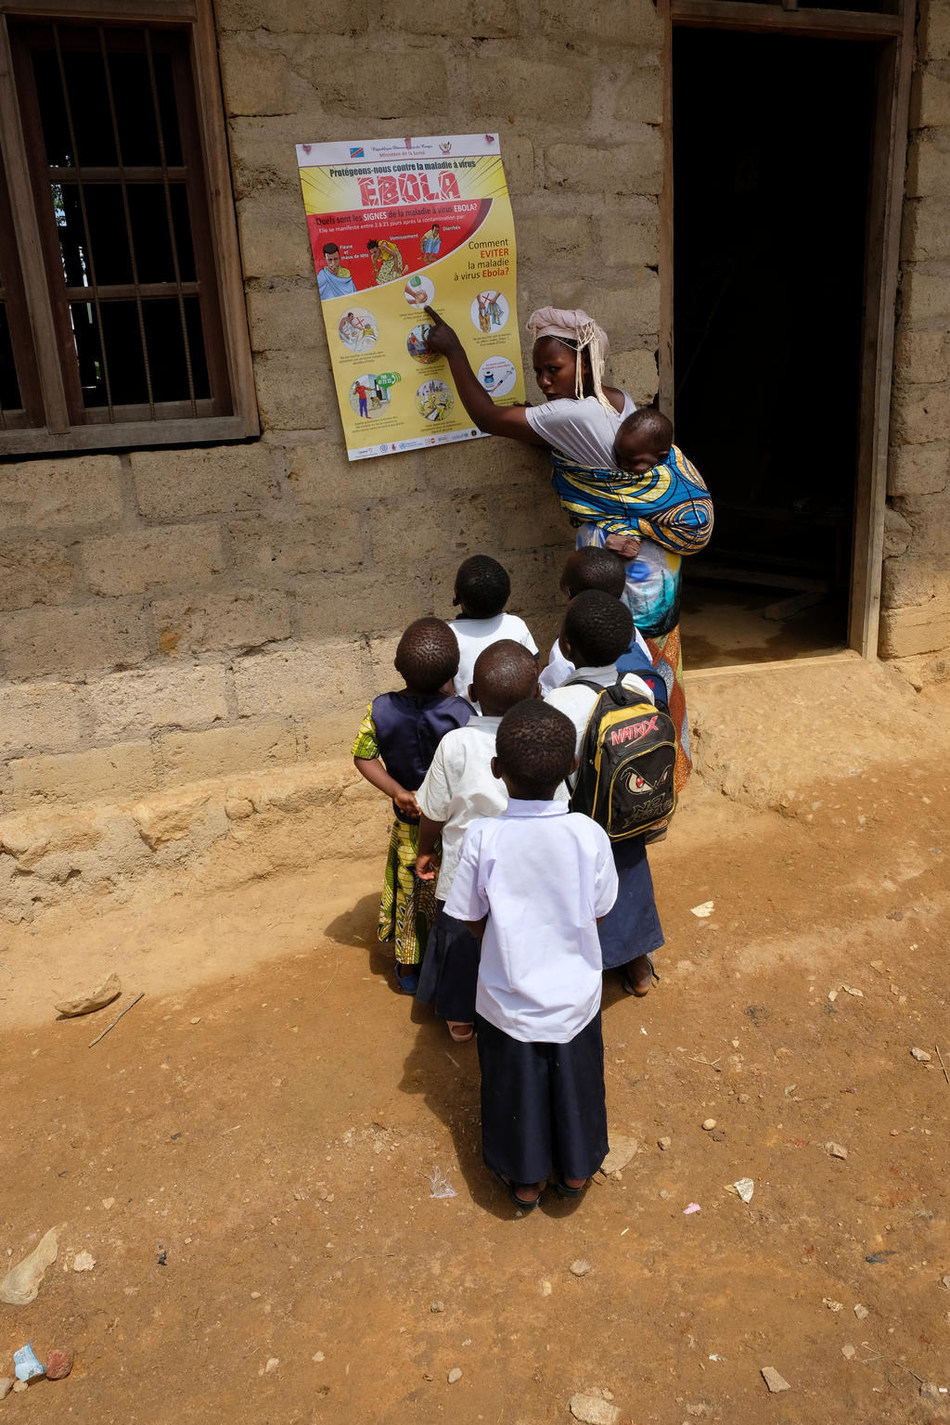 On 12 September 2018 in Beni, teacher and mother Kahindo Inyamunyu teaching her students how to protect themselves against Ebola, after a recent outbreak in the Democratic Republic of Congo. They live in the Ndini neighborhood of Beni, which has been hit particuarly hard. © UNICEF/UN0235947/Nybo (CNW Group/UNICEF Canada)